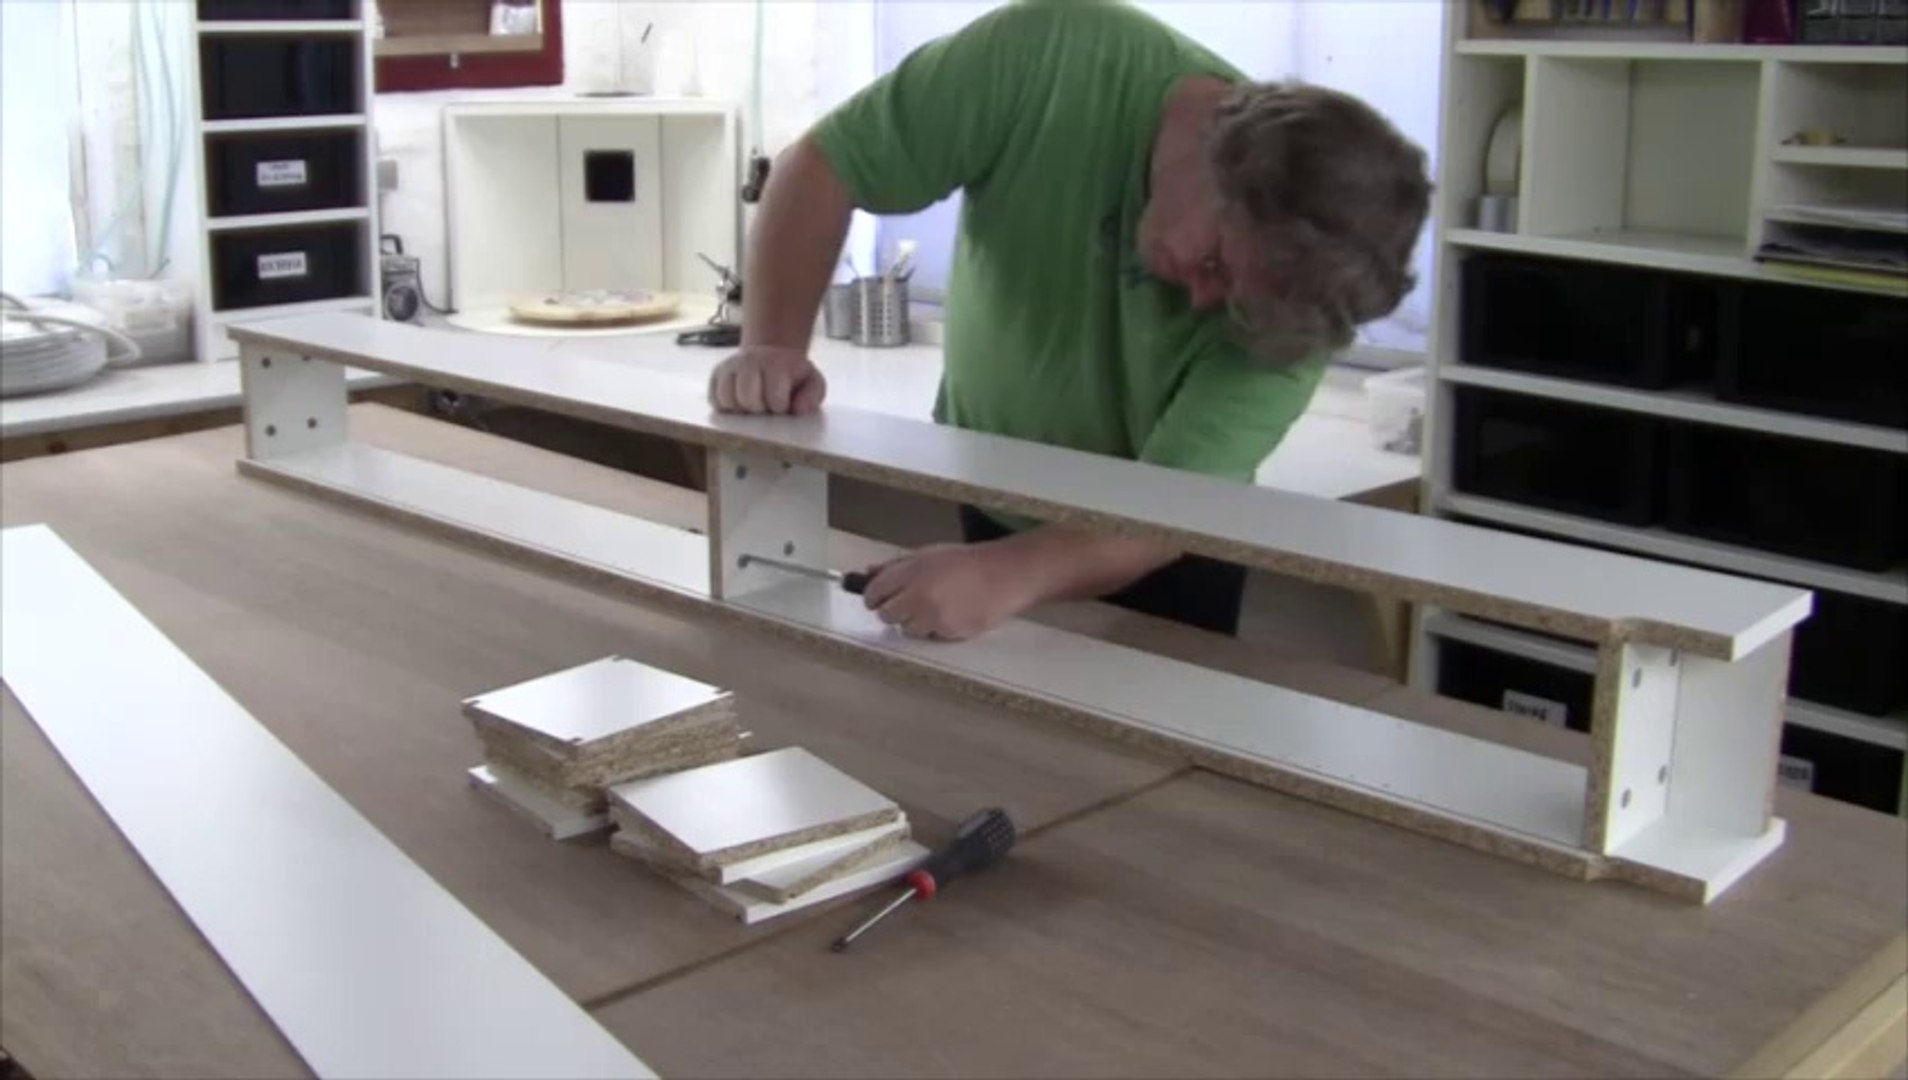 Assembling The Ikea Gnedby And Some Shelves And Using Them In My Electronics Workshop